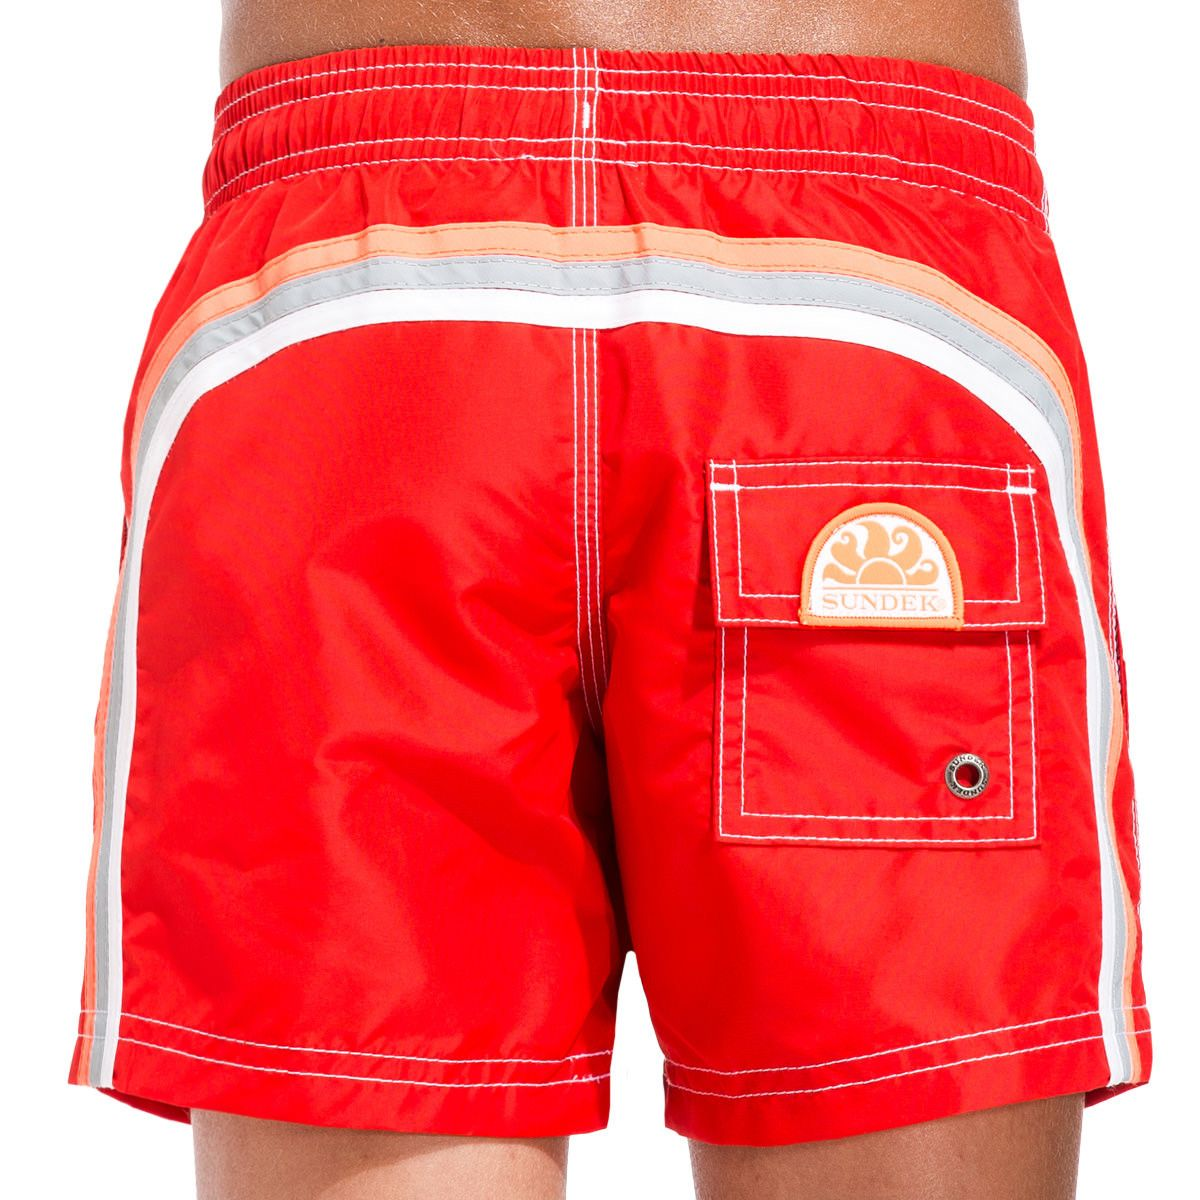 Boardshort bimbo SUNDEK B504BDTA100 fire red